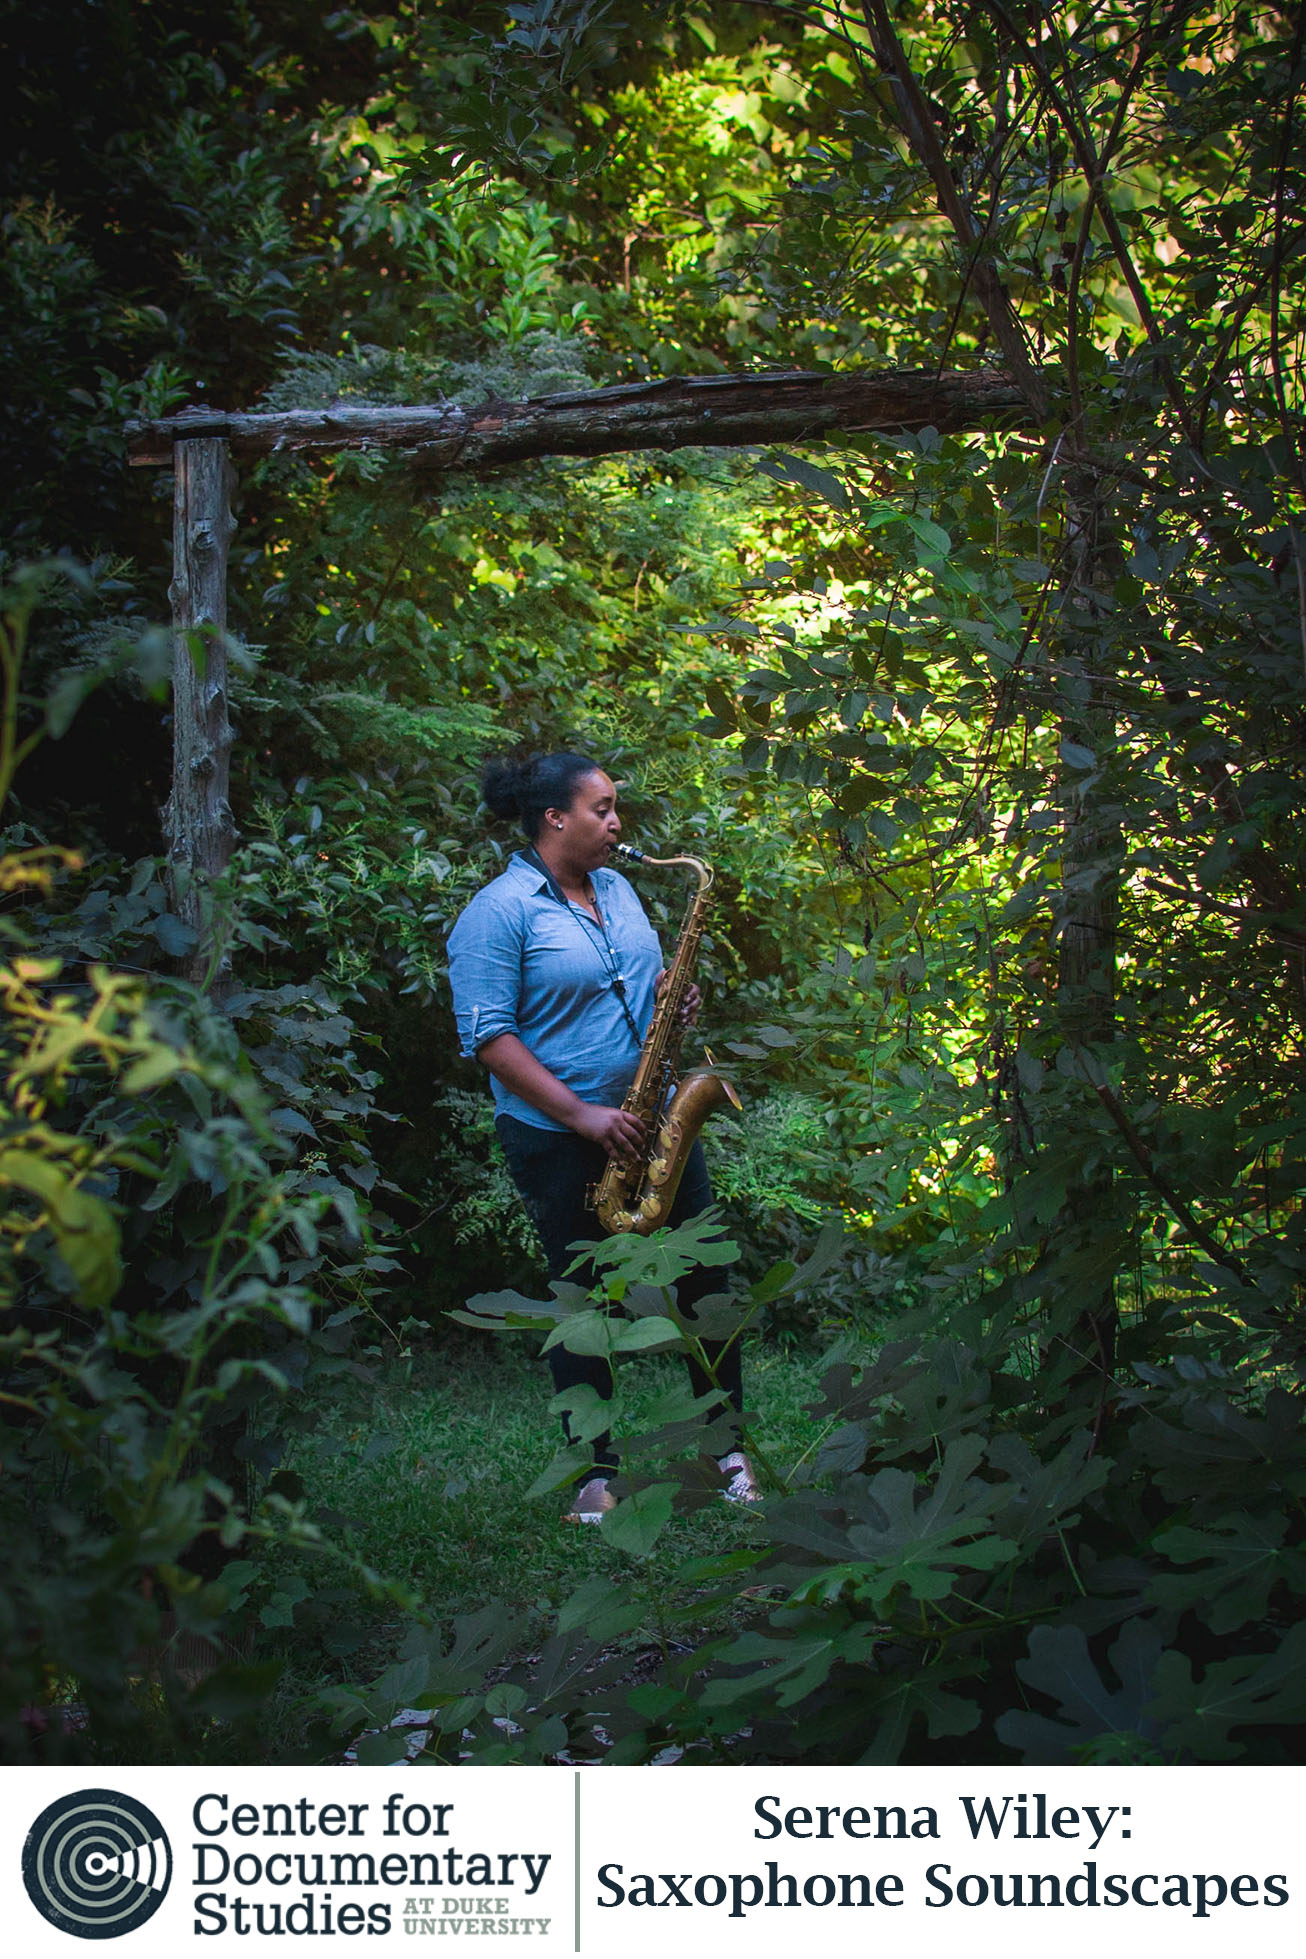 A passing train whistles, a car turn signal ticks, birds sing in the distance—North Carolina-based saxophonist, Serena Wiley, invites you to engage with the sounds that inspire her.    Listen to the story here:  https://soundcloud.com/cds-audio/saxophone-soundscapes